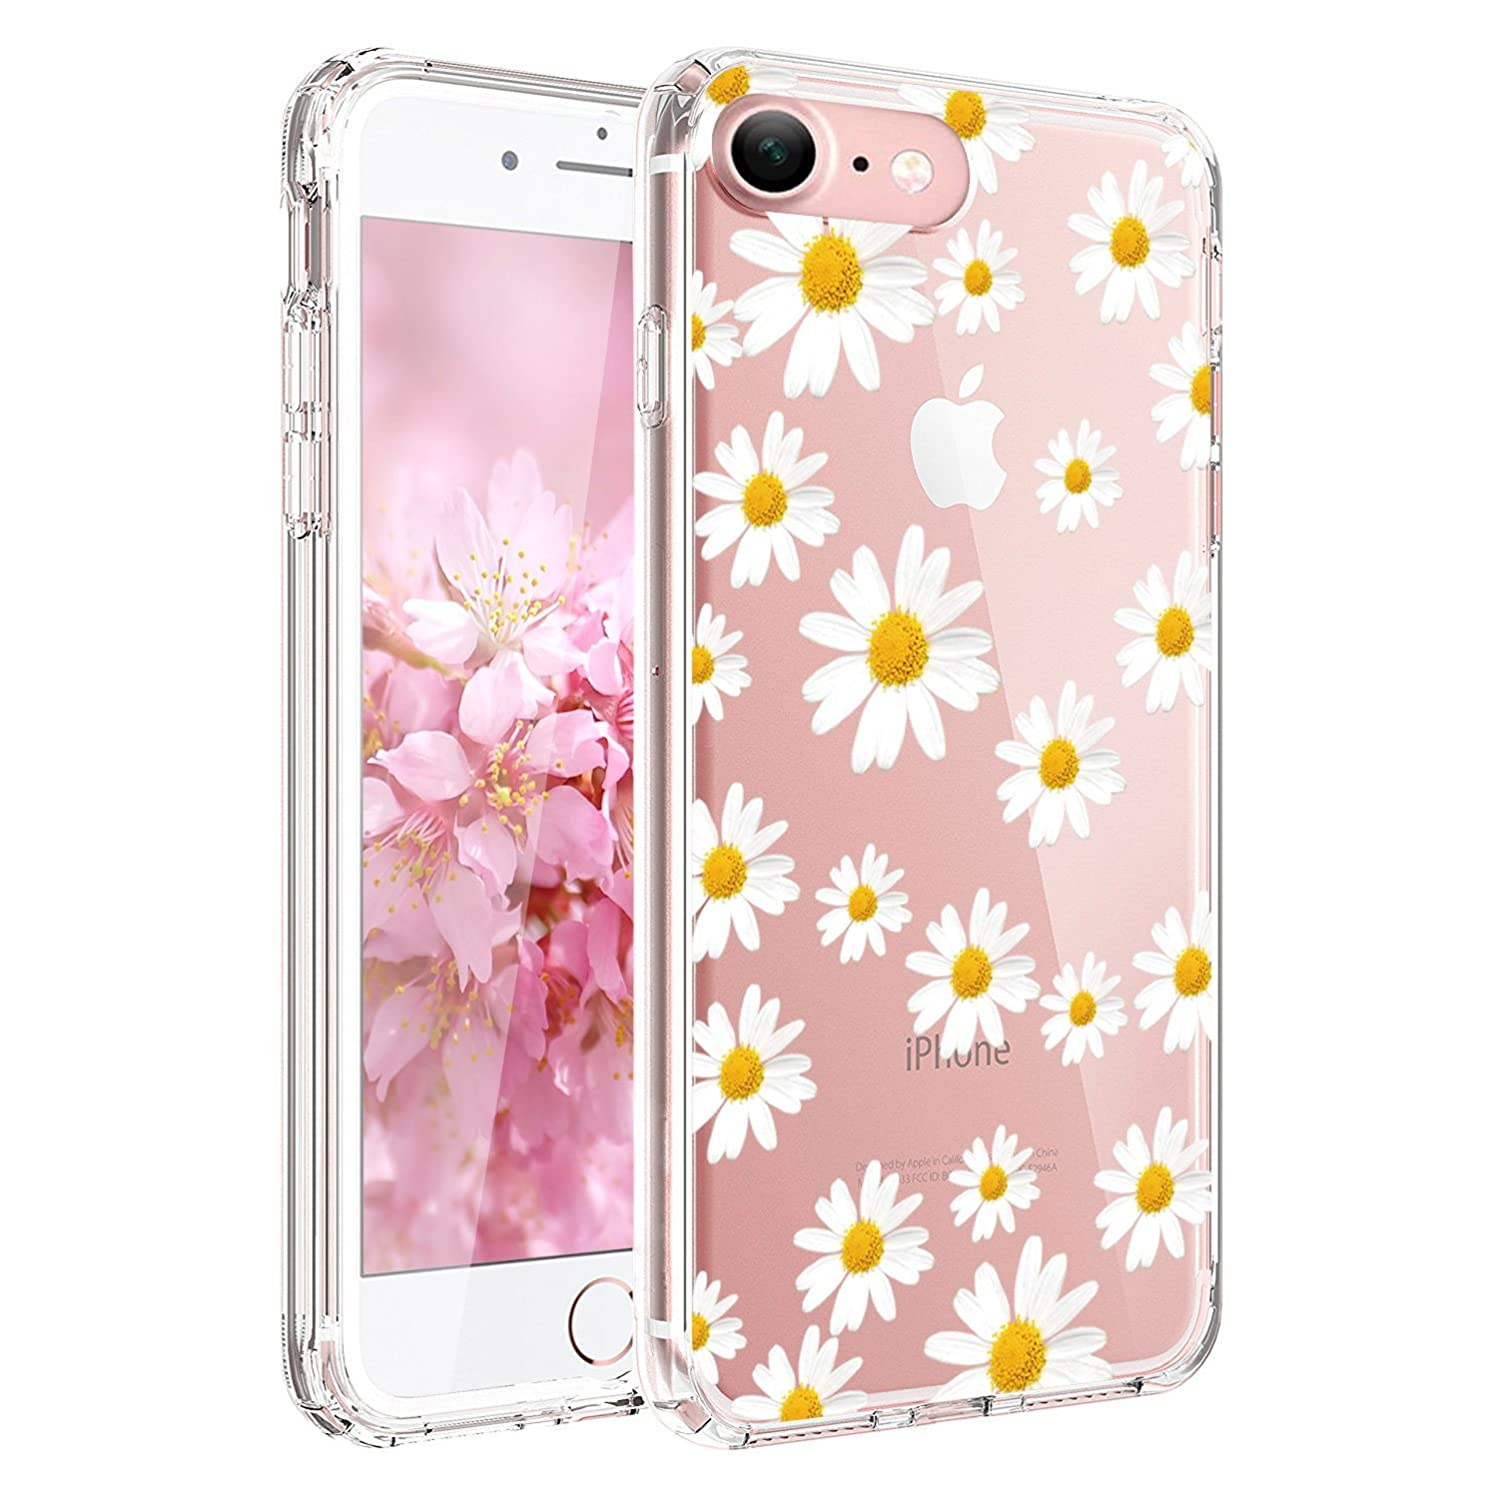 JIAXIUFEN Clear Slim Shockproof Flower Floral Design Soft Flexible TPU Silicone Back Cover Phone Case Compatible with iPhone 6 and iPhone 6S - Little Daisies